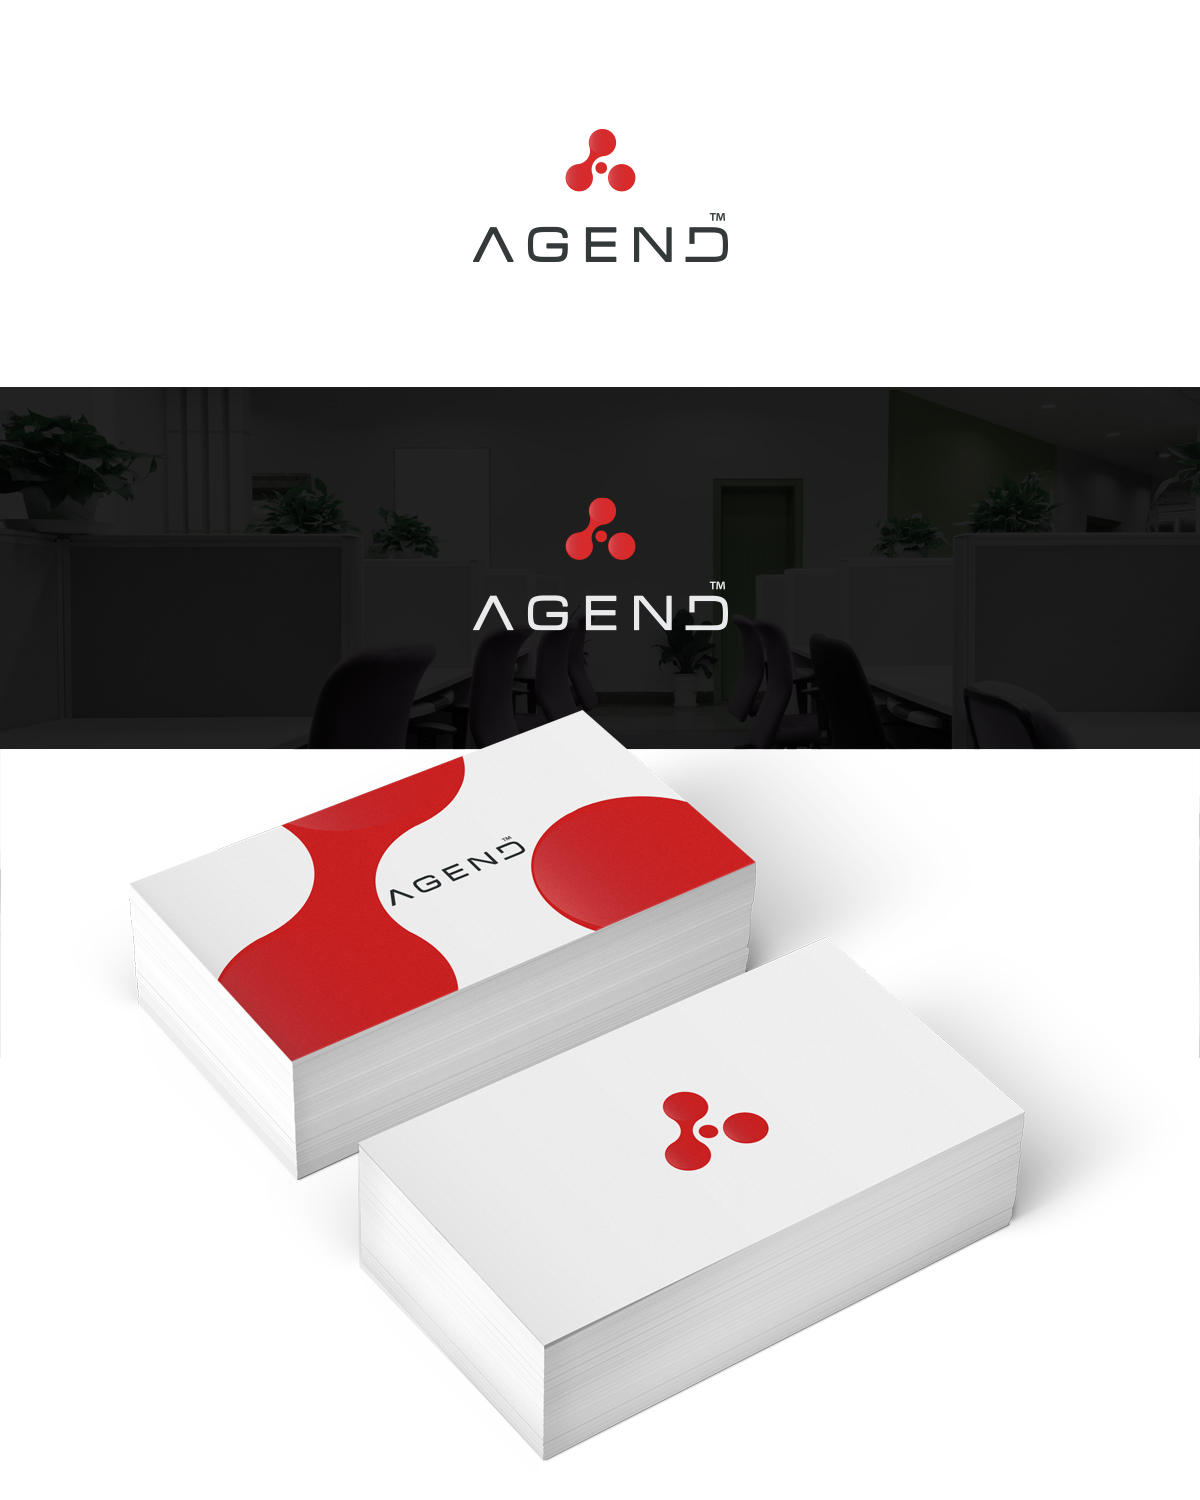 164 Modern Professional Logo Designs for AGEND a business